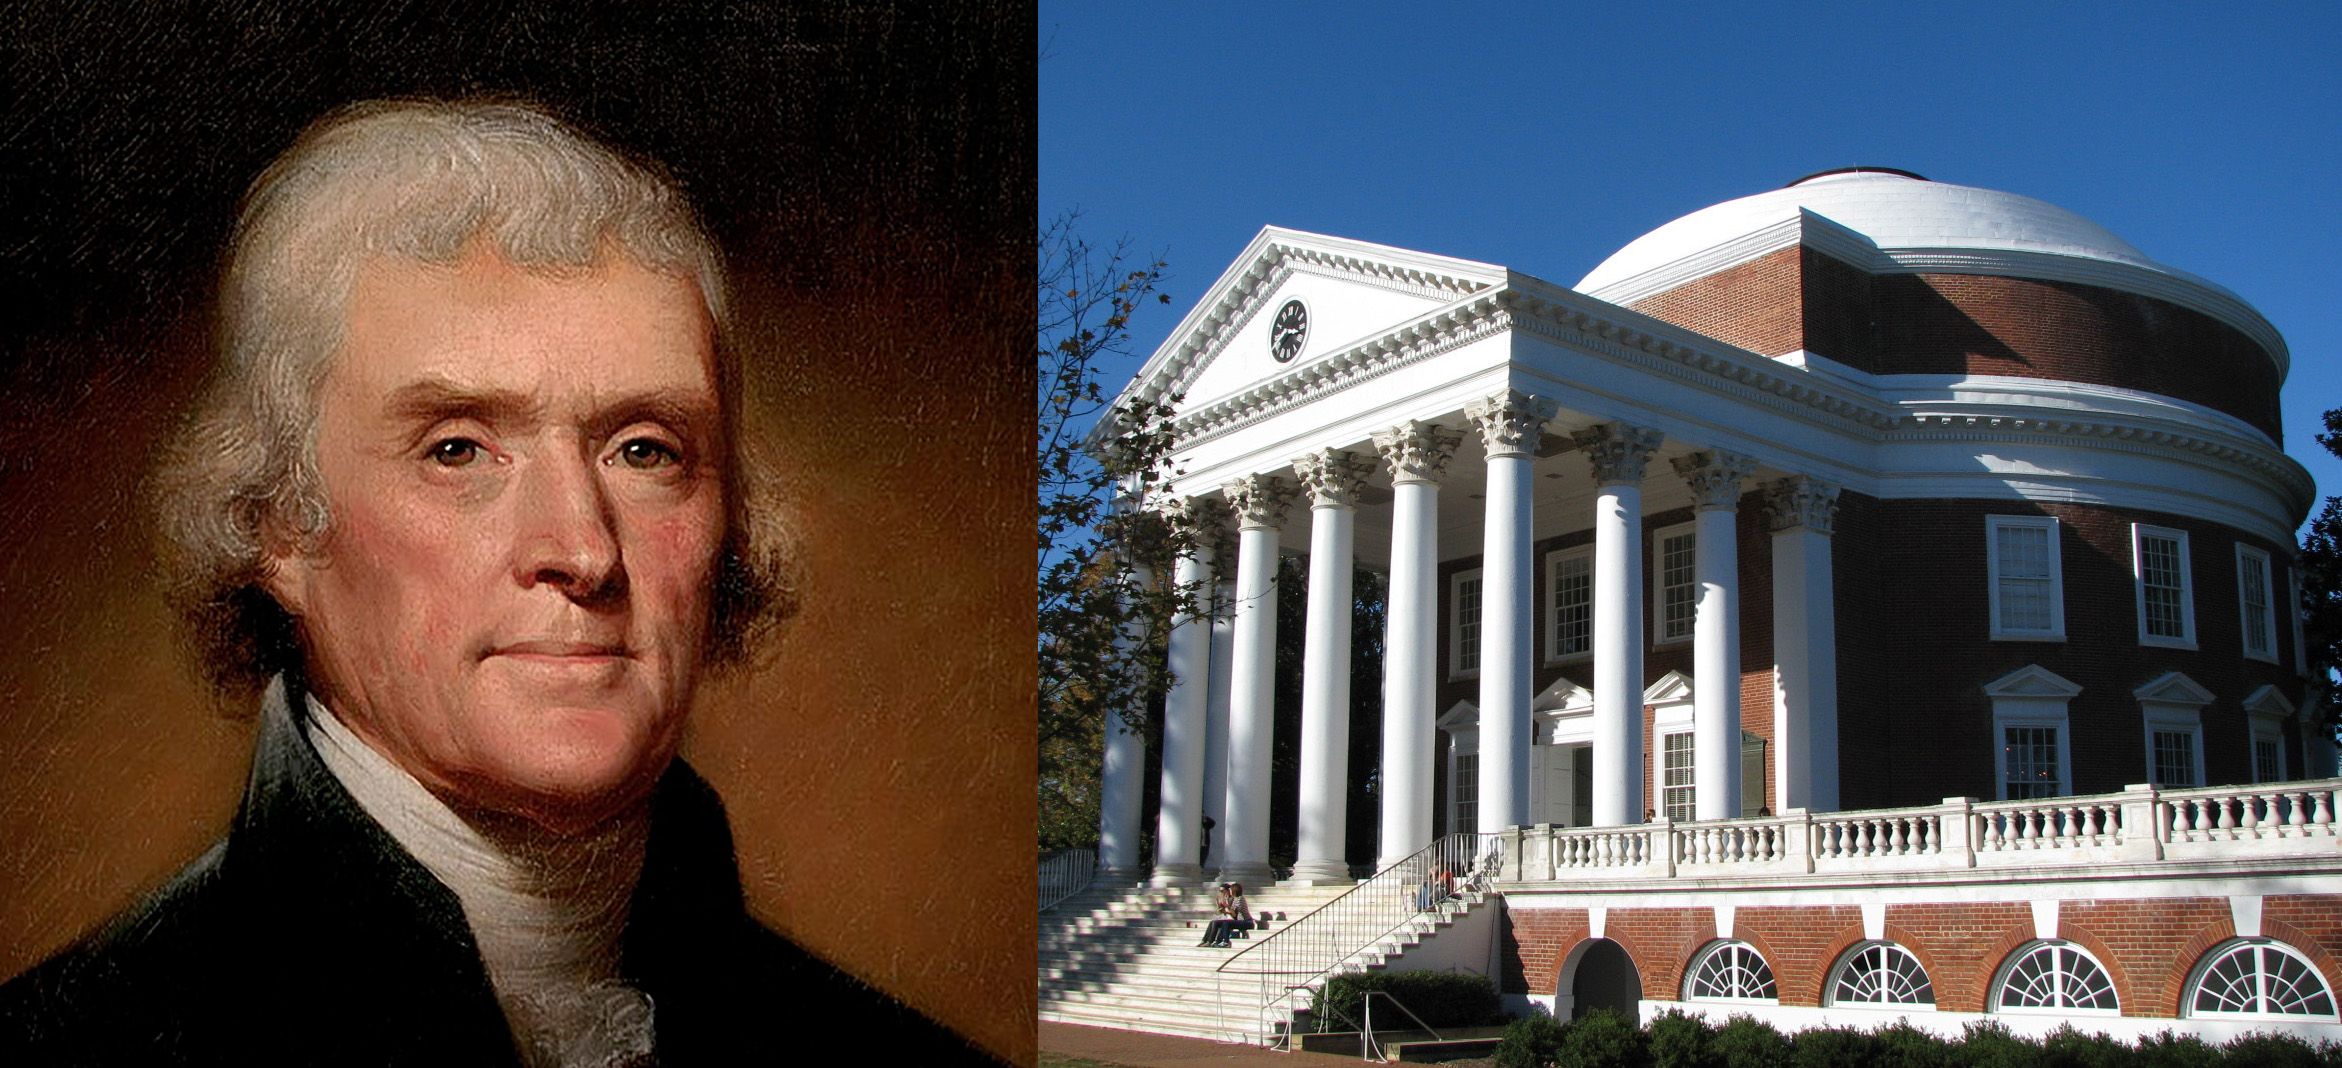 Thomas Jefferson and Monticello